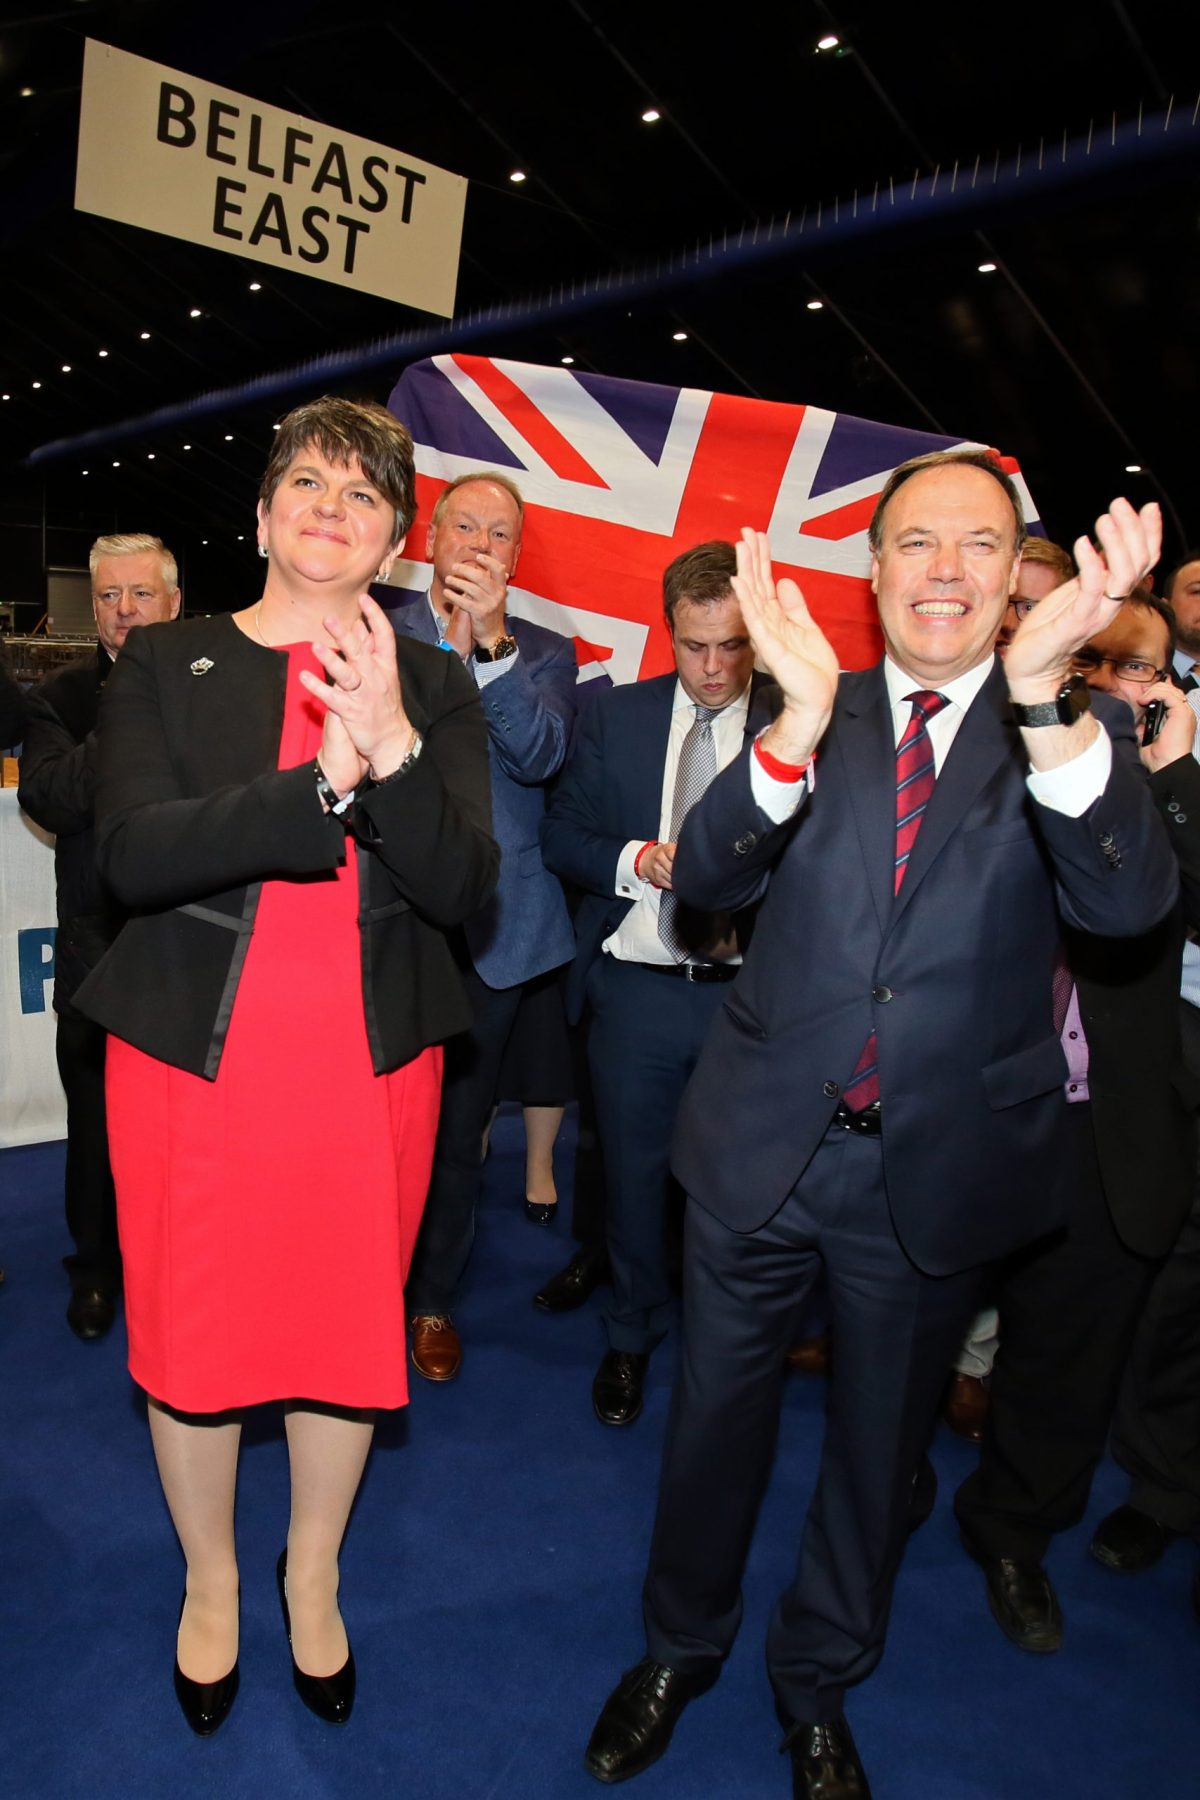 Democratic Unionist Party (DUP) deputy leader Nigel Dodds (right) and leader Arlene Foster celebrate Dodds winning his Belfast North seat at the counting centre in Belfast, Northern Ireland, early in the morning of June 9, 2017. Photo: AFP / Paul Faith